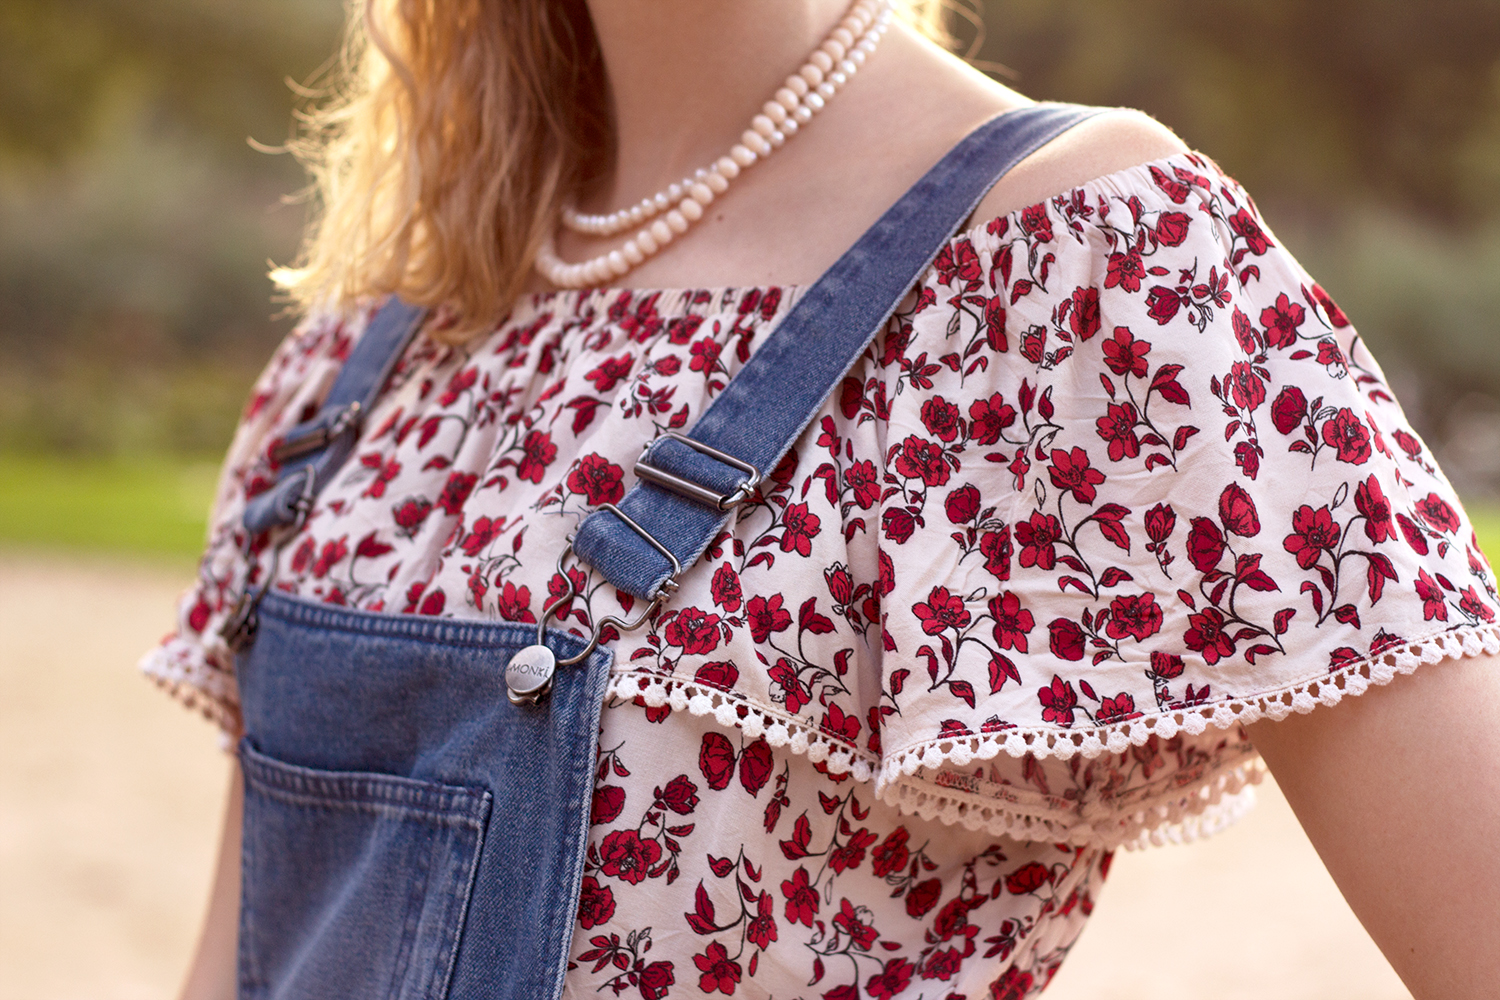 Retromantisch retro romantic fashion blog vintage look floral top H&M tuinbroek monki dungarees dungaree pearl necklace drks roses